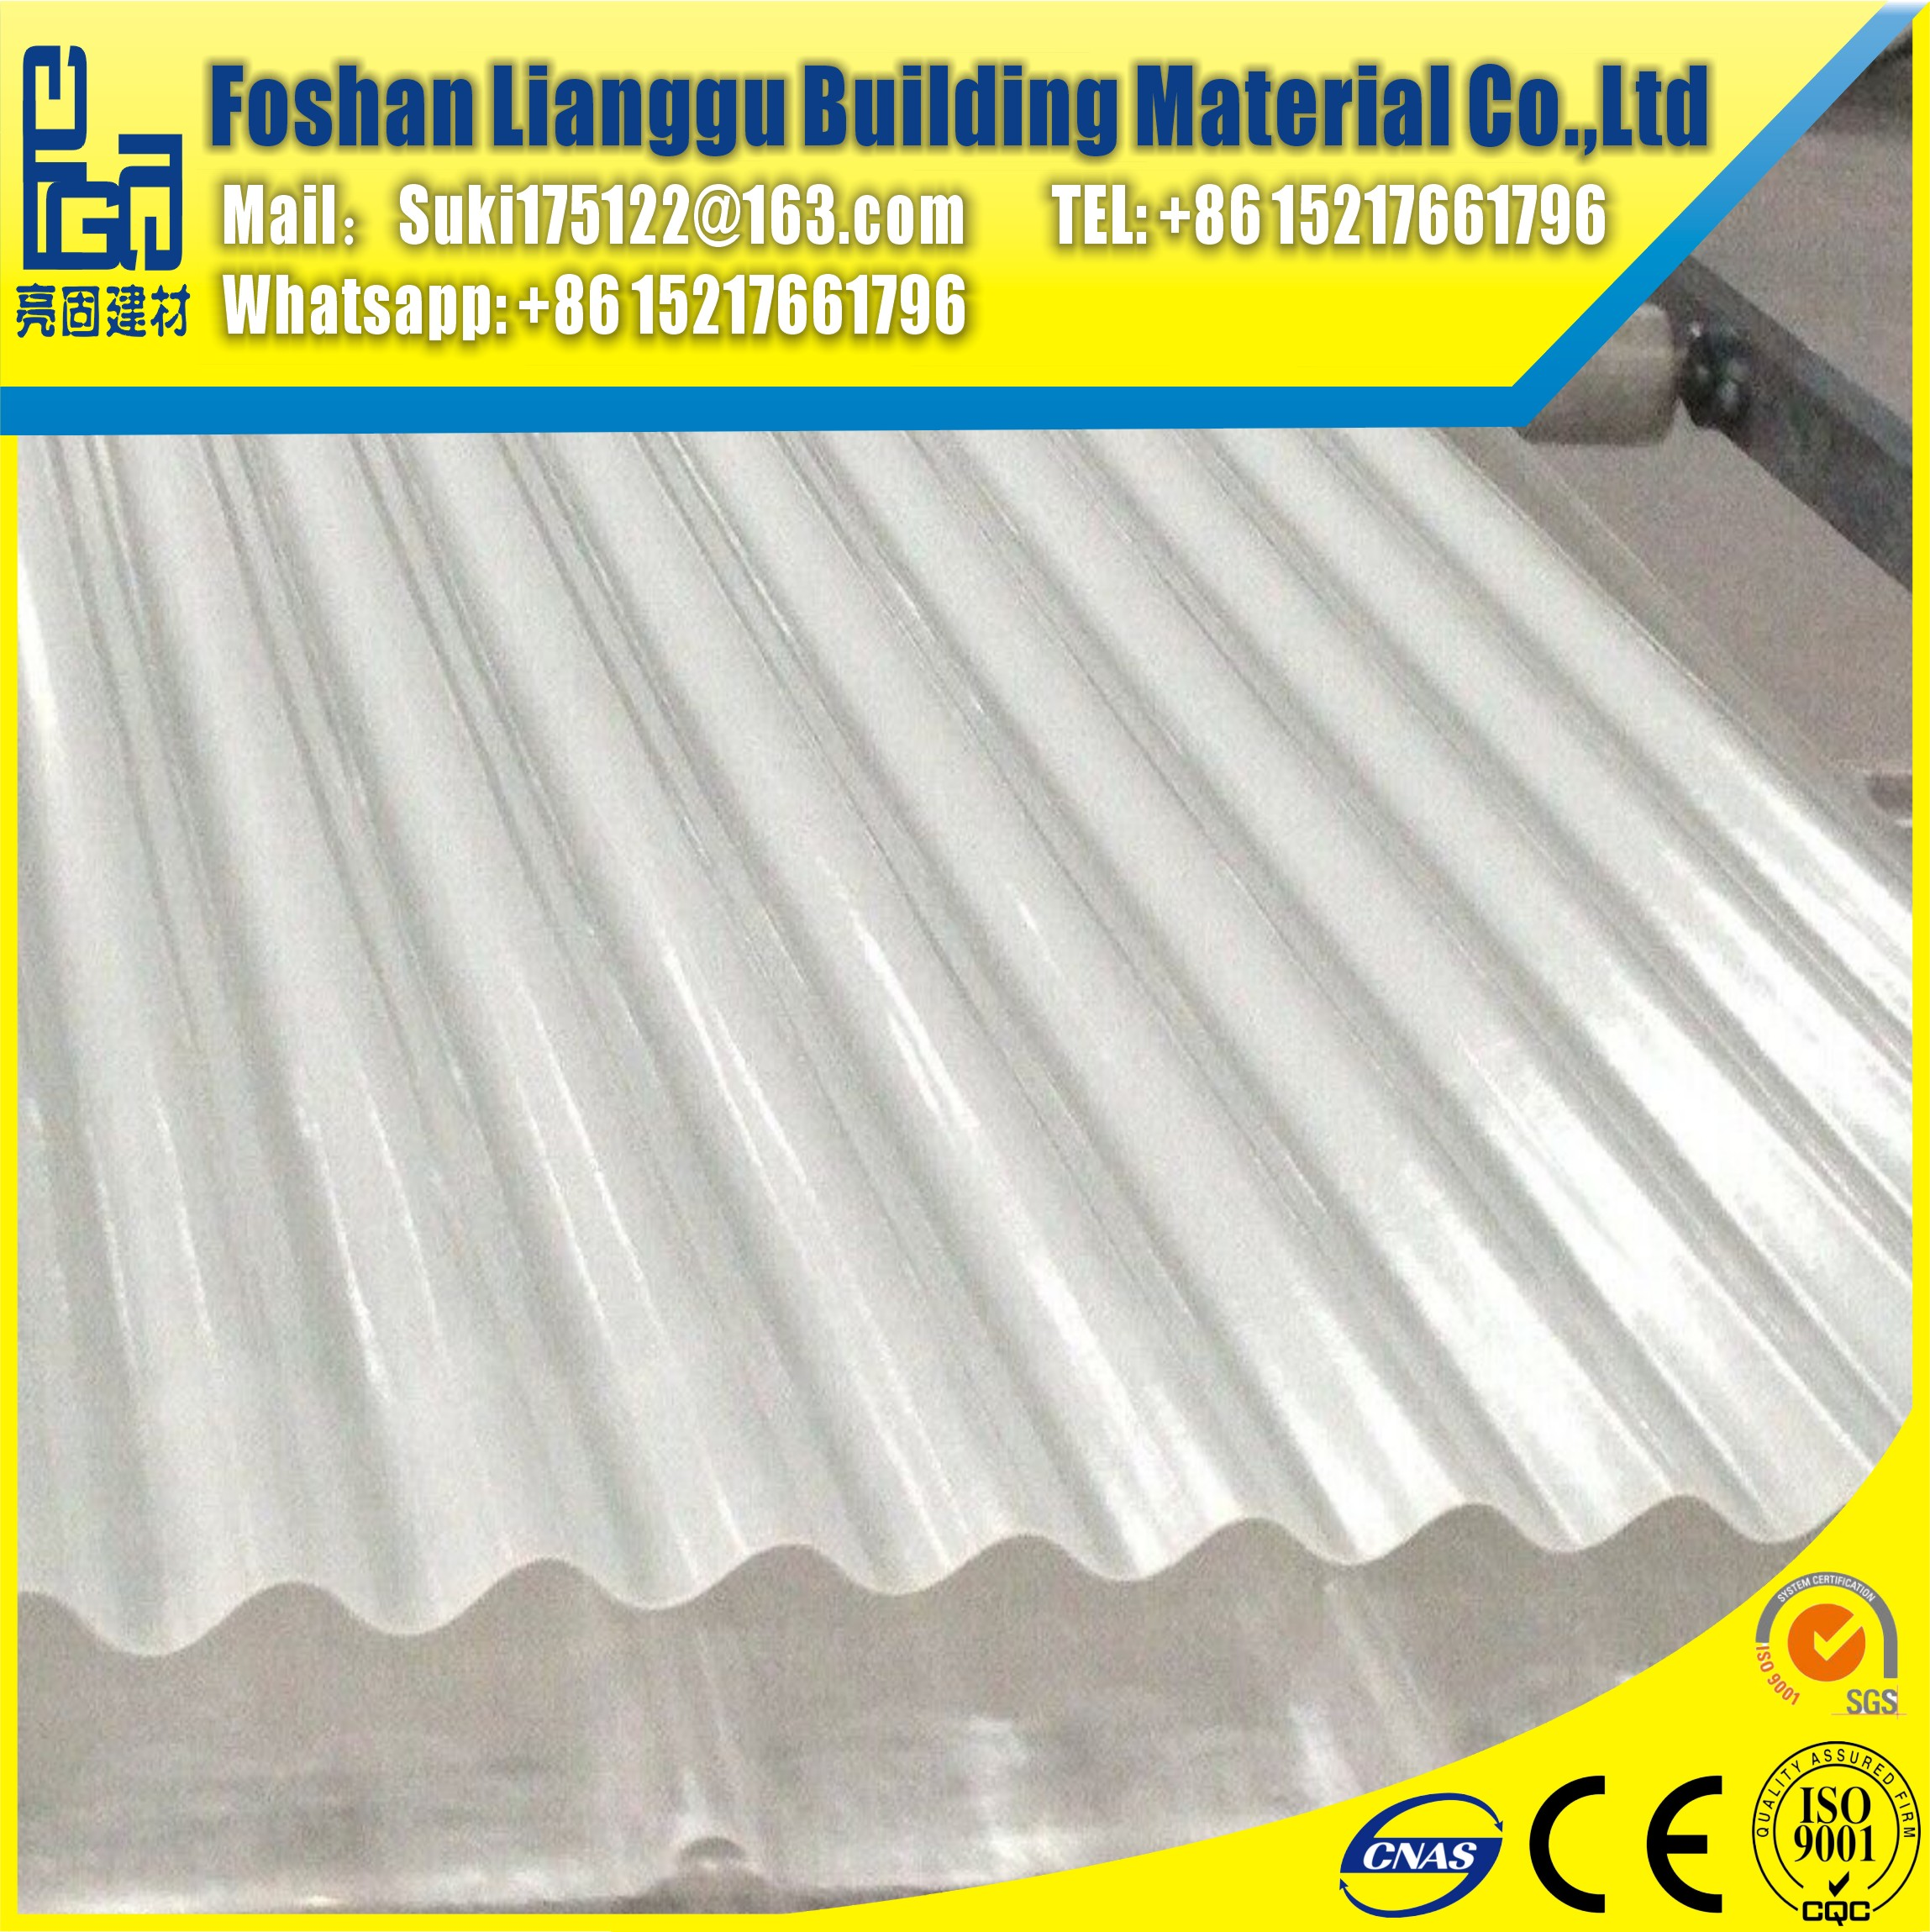 low price stock of FRP transparent fiberglass roofing sheet/panel/plate/tile